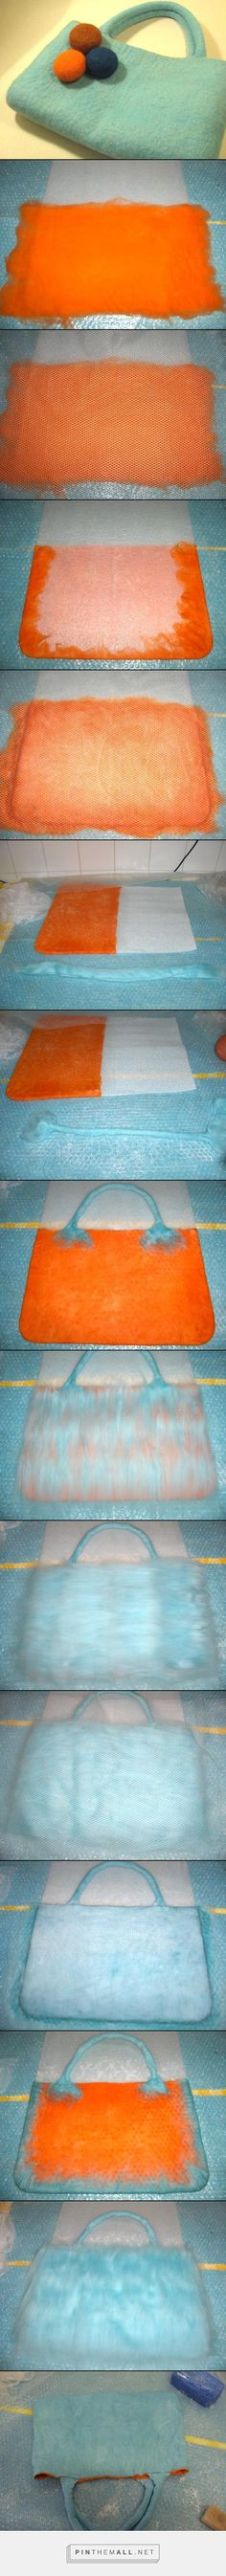 How to wet felt a seamless bag with handles in two colors – workshop by Vanda F. Sousa from Going the Dodo Way. Felt Diy, Handmade Felt, Felt Crafts, Wet Felting Projects, Felting Tutorials, Needle Felted, Nuno Felting, Felt Purse, Felt Bags